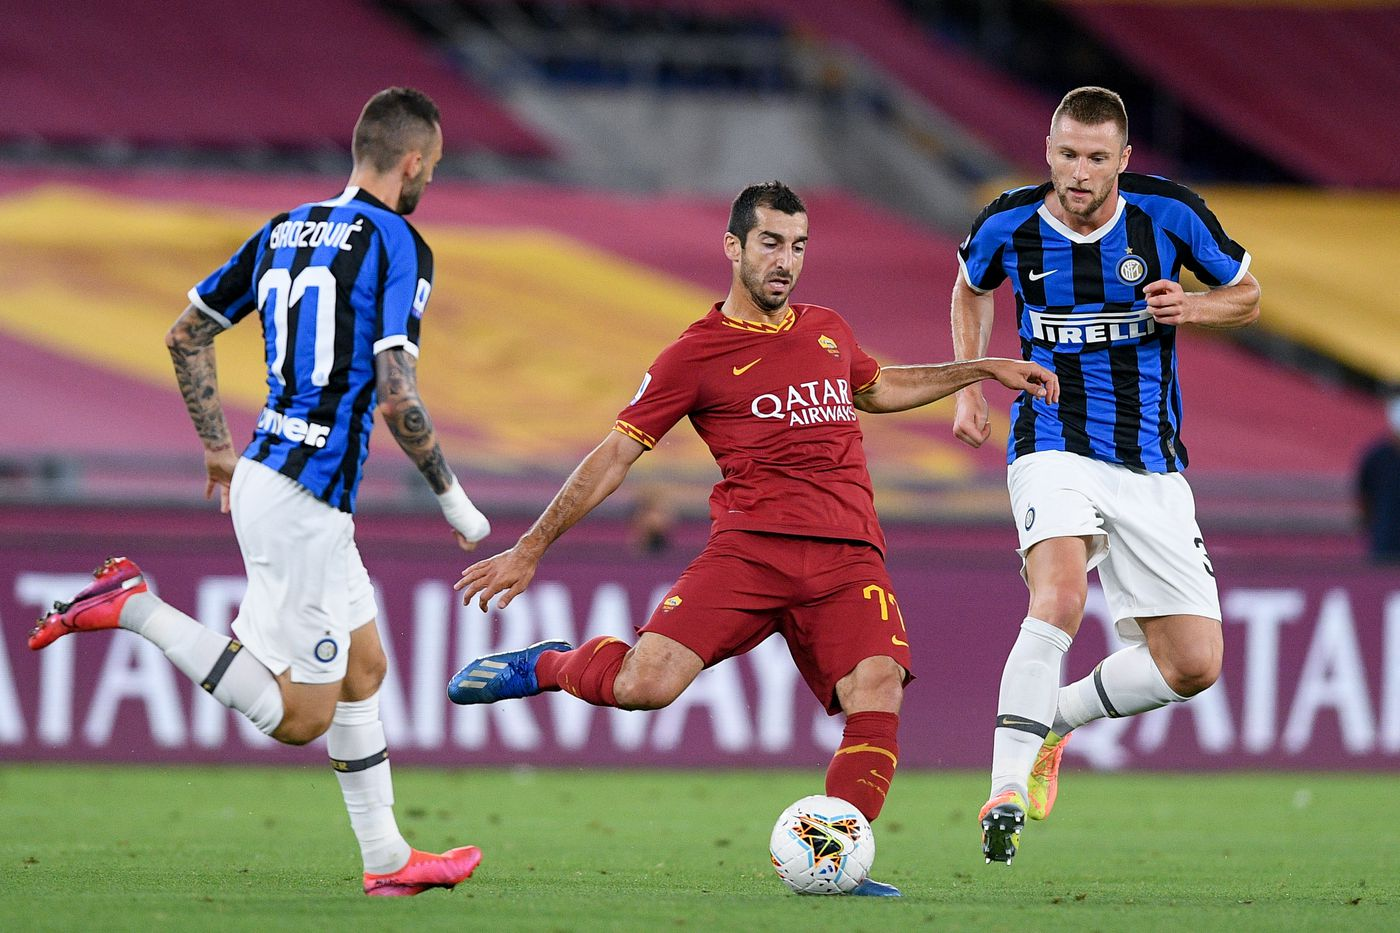 AS Roma vs Inter Milan: Match Preview - Serpents of Madonnina